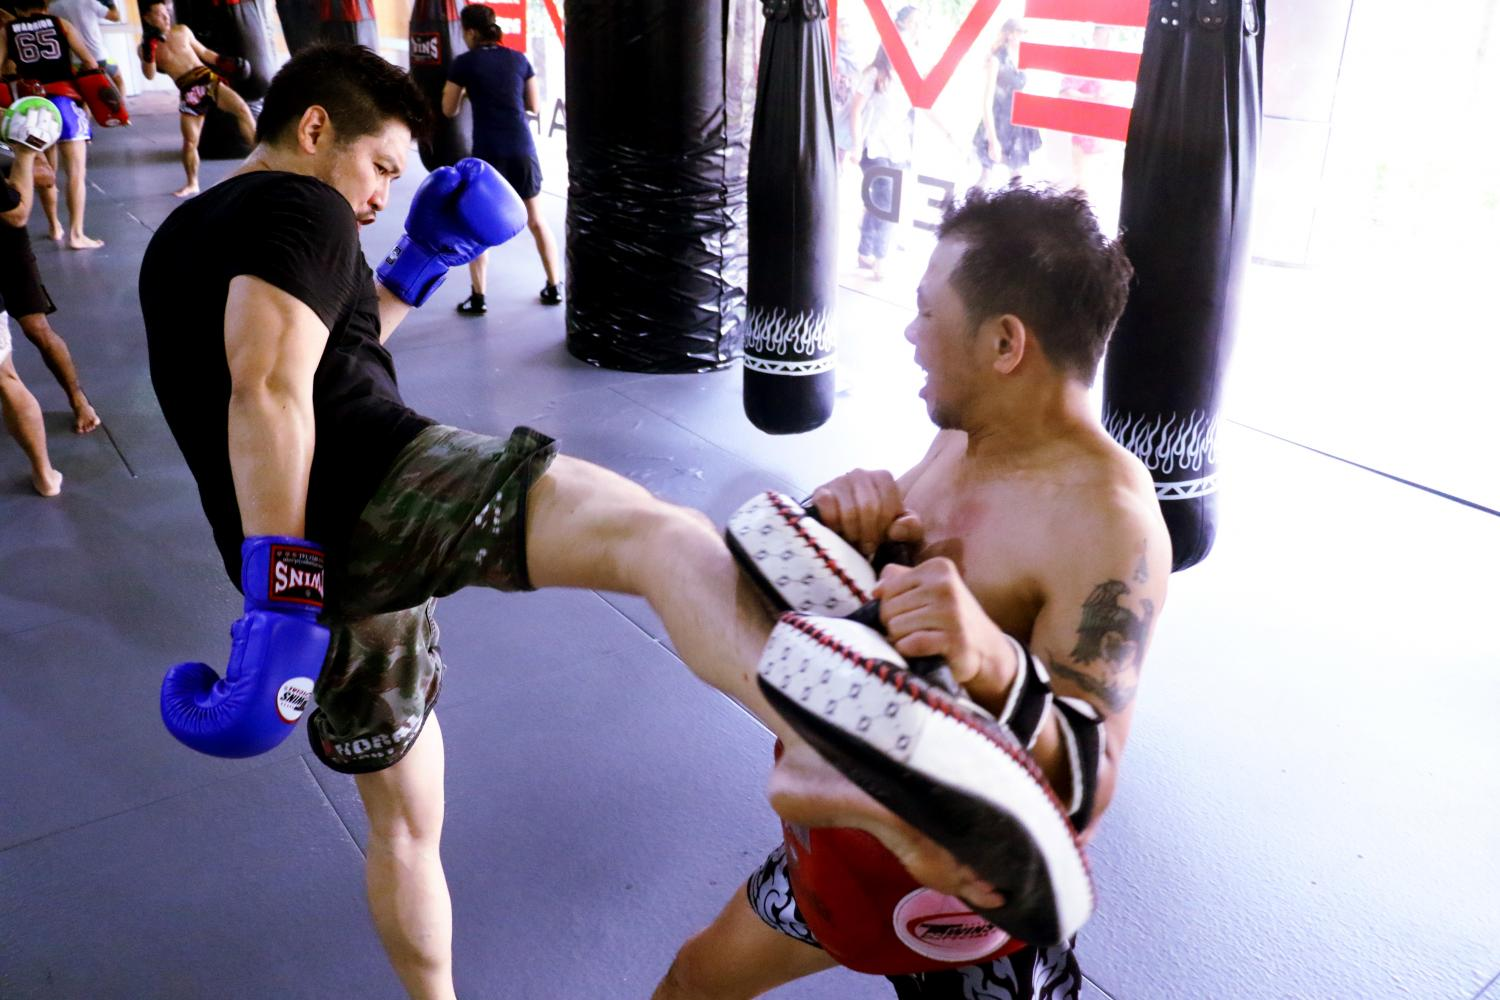 Workout With Muay Thai Training And Boxing In Thailand For Good Health -  Blog on Tech, SEO, Social Media, Business, Jobs and Carrier, World, Sports,  Lifestyle, Health and Fitness and Education